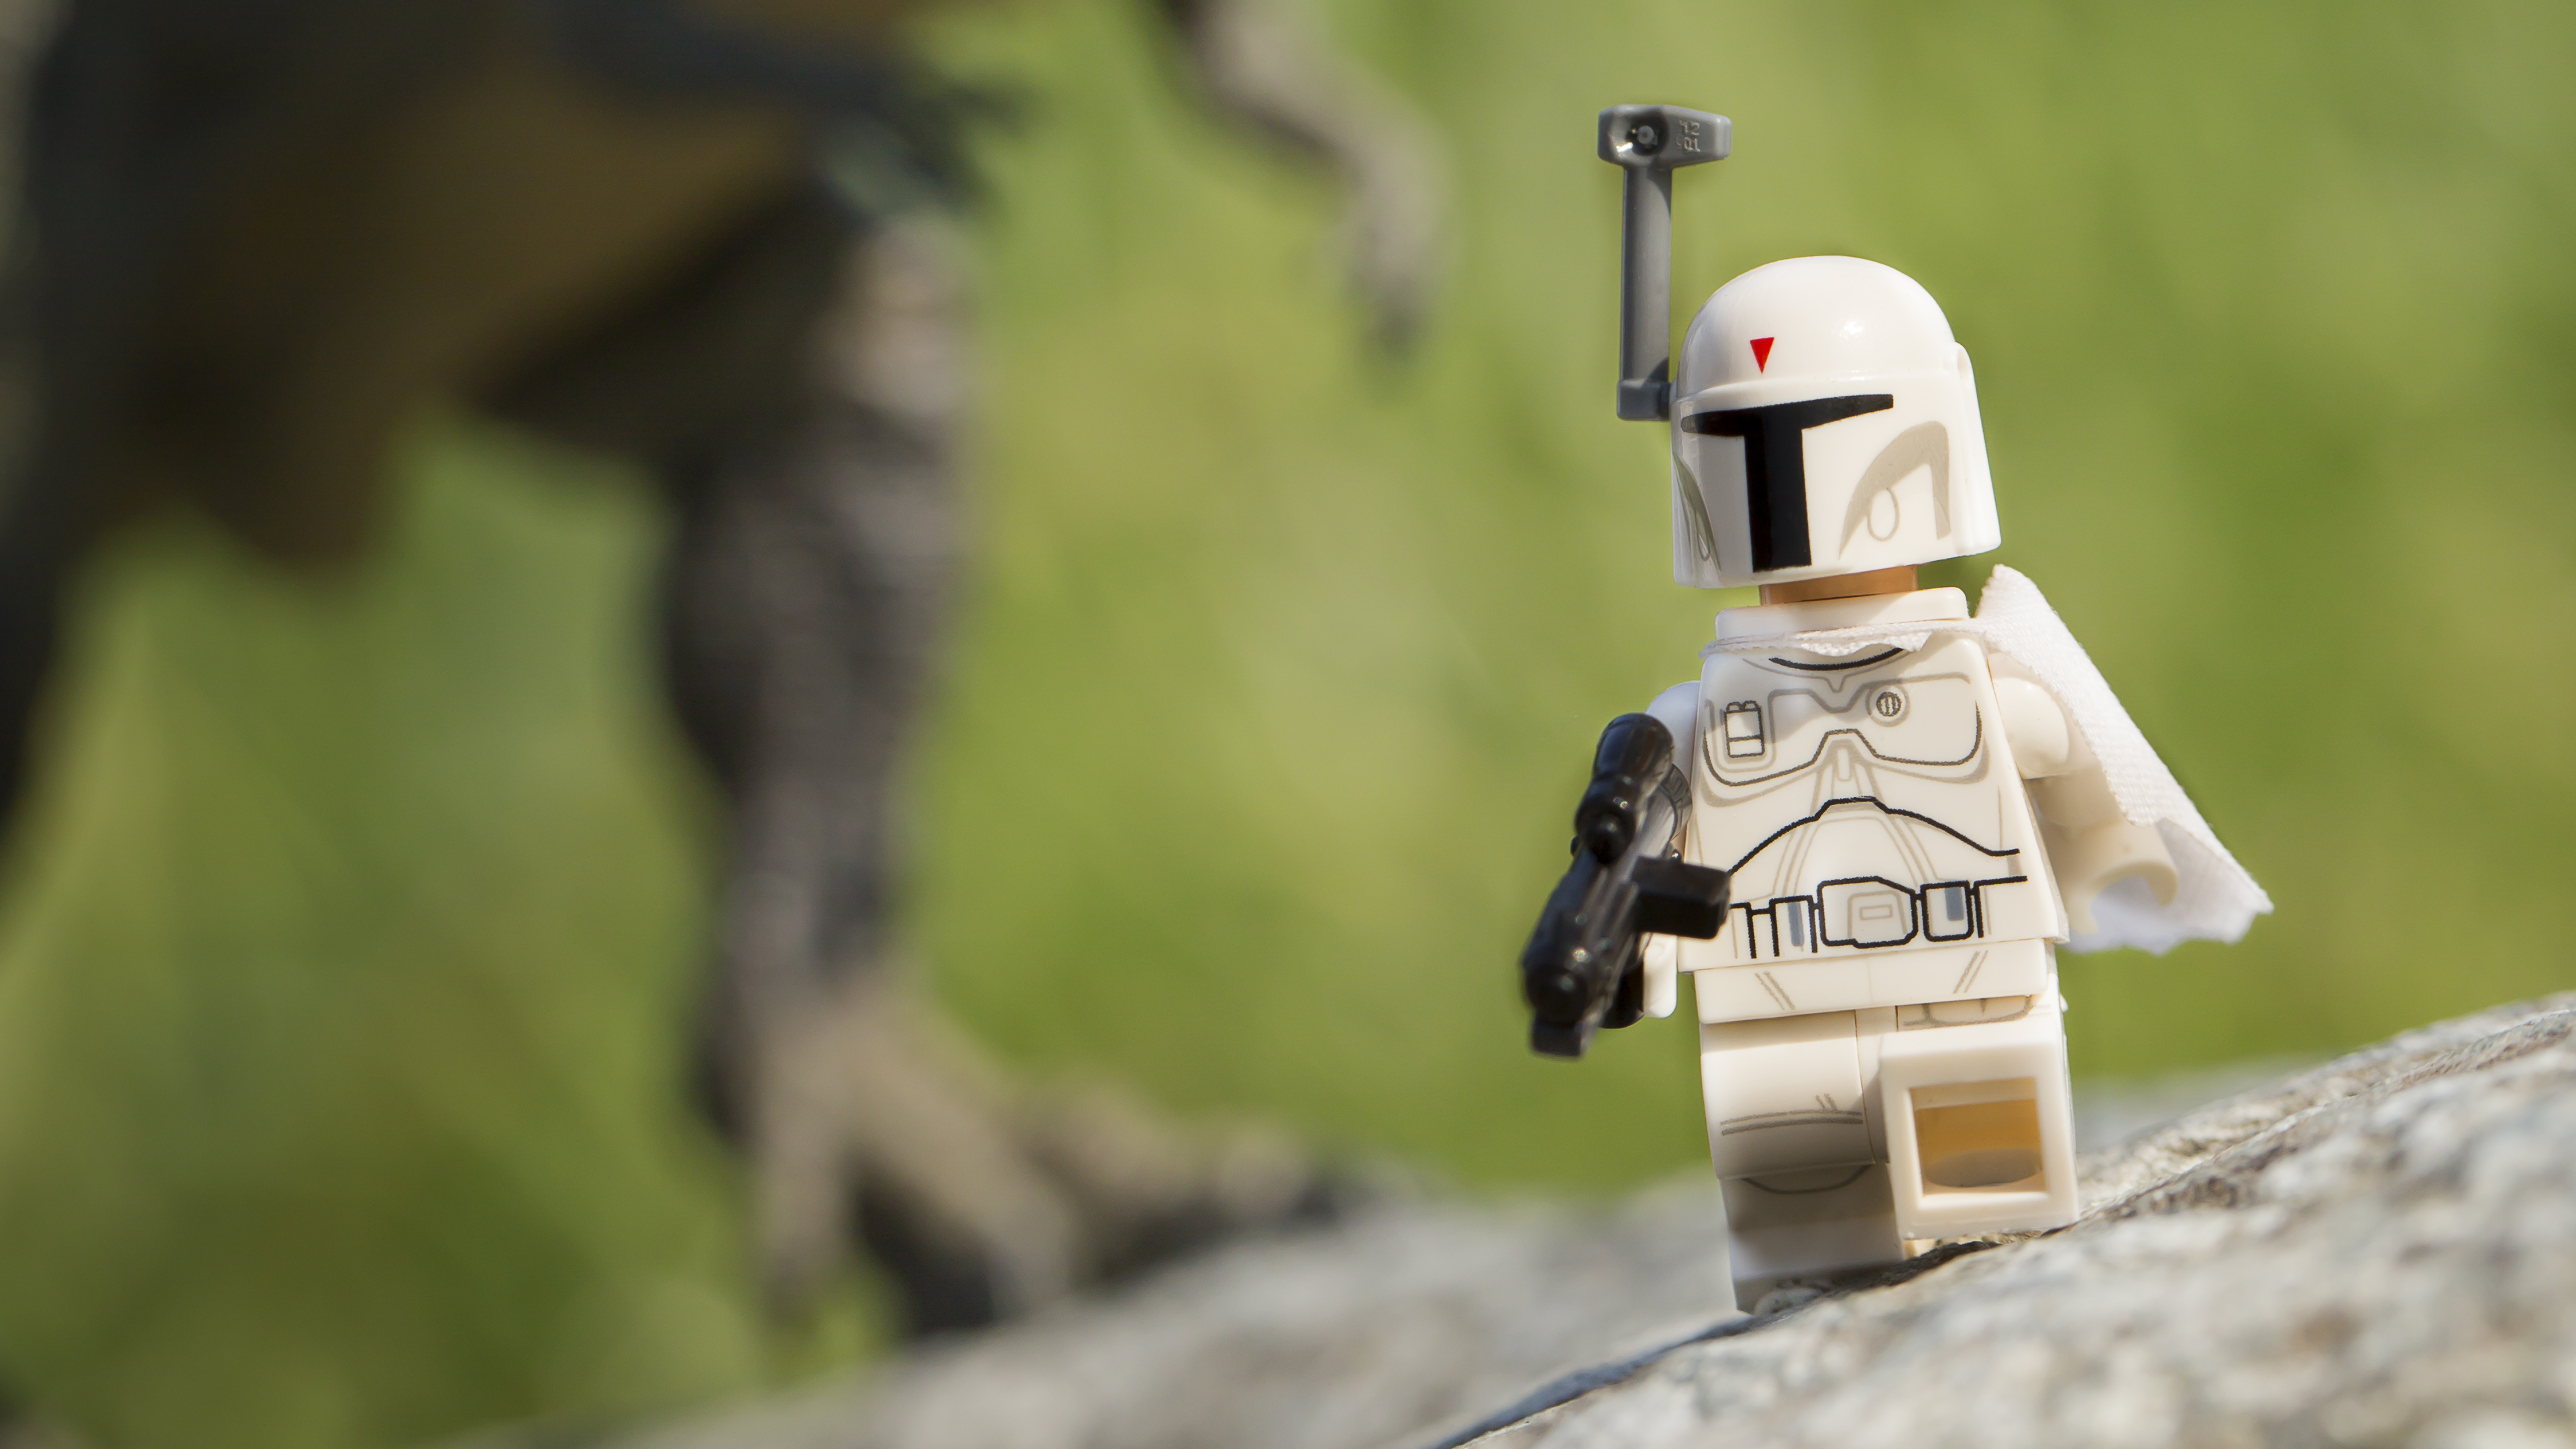 Fair Use in regards to Toy Photography